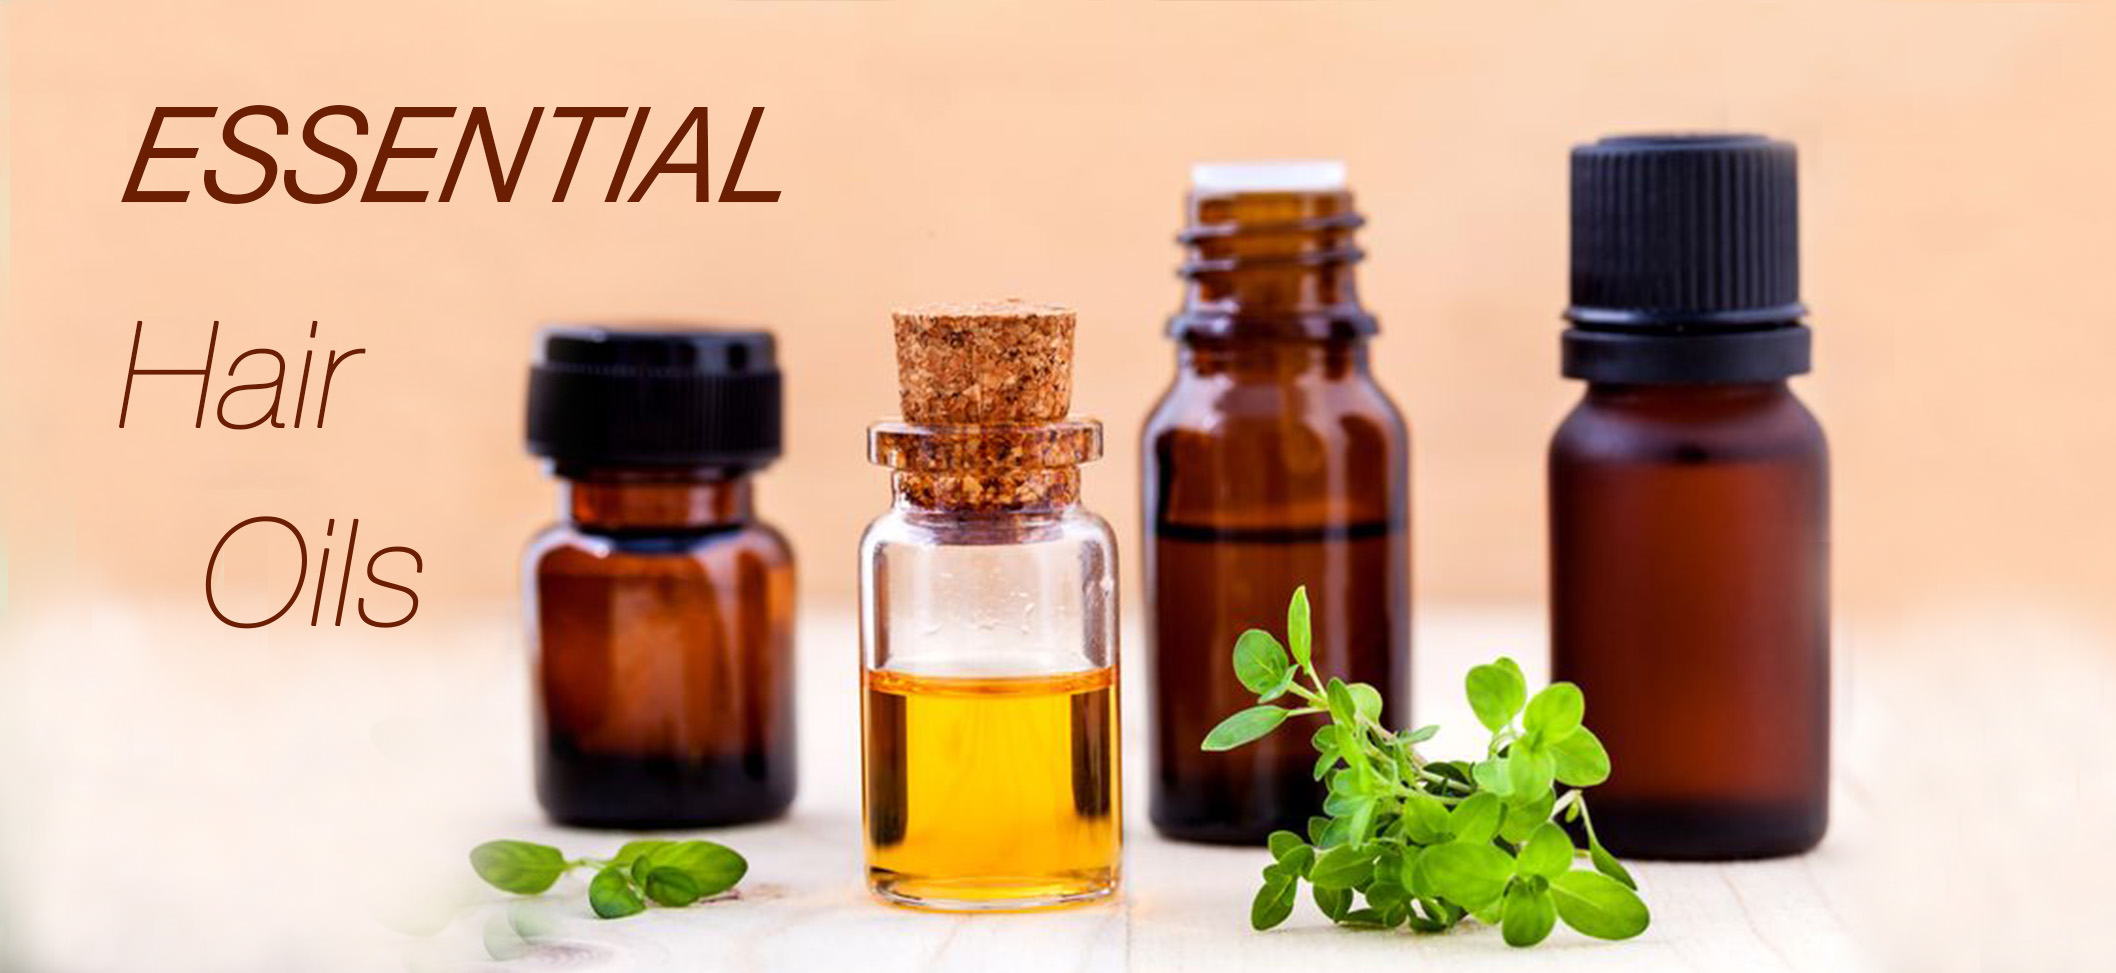 Three essential oils